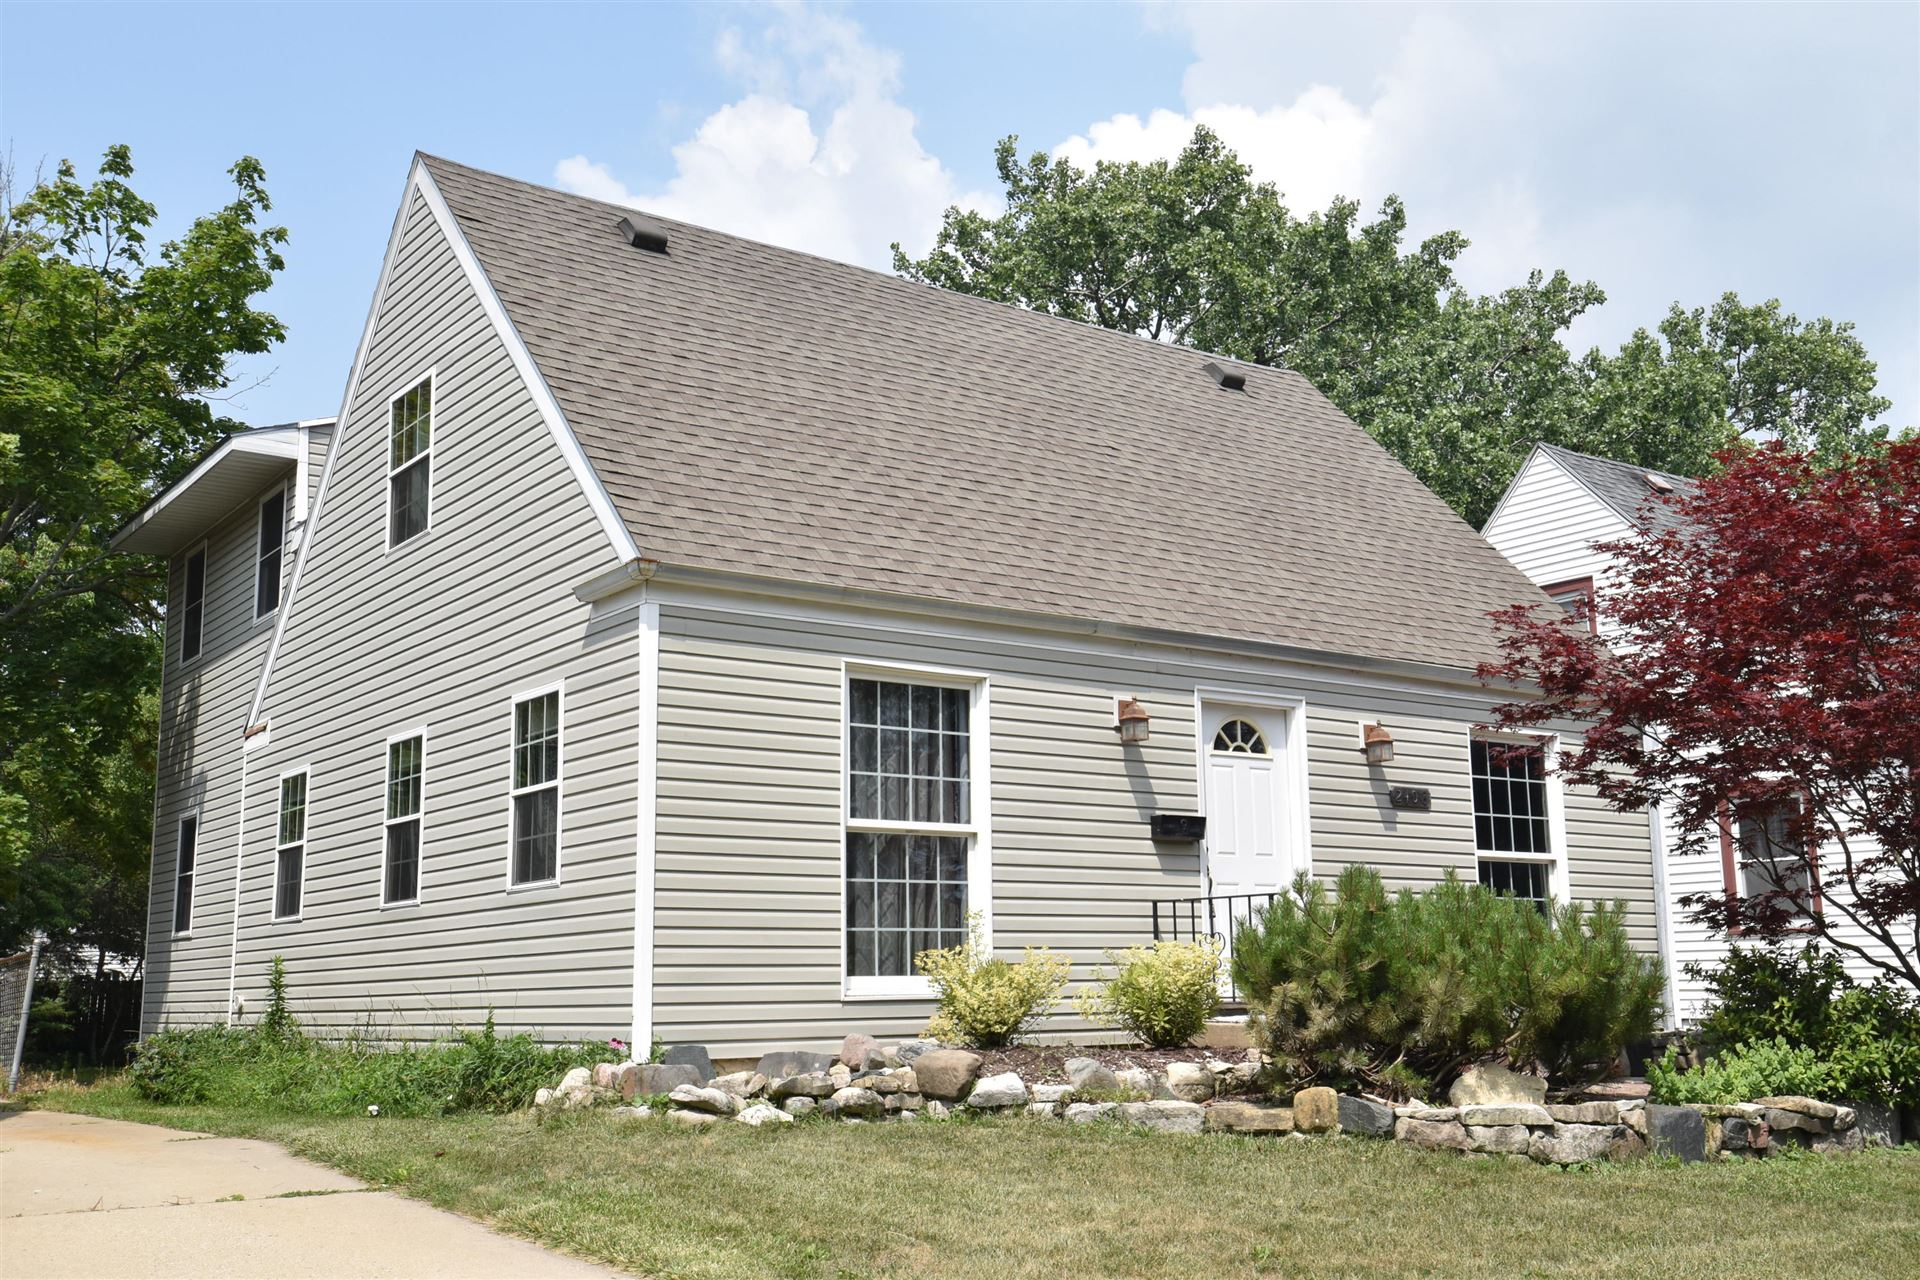 2408 Hayes Ave, Racine, WI 53405 - #: 1755546